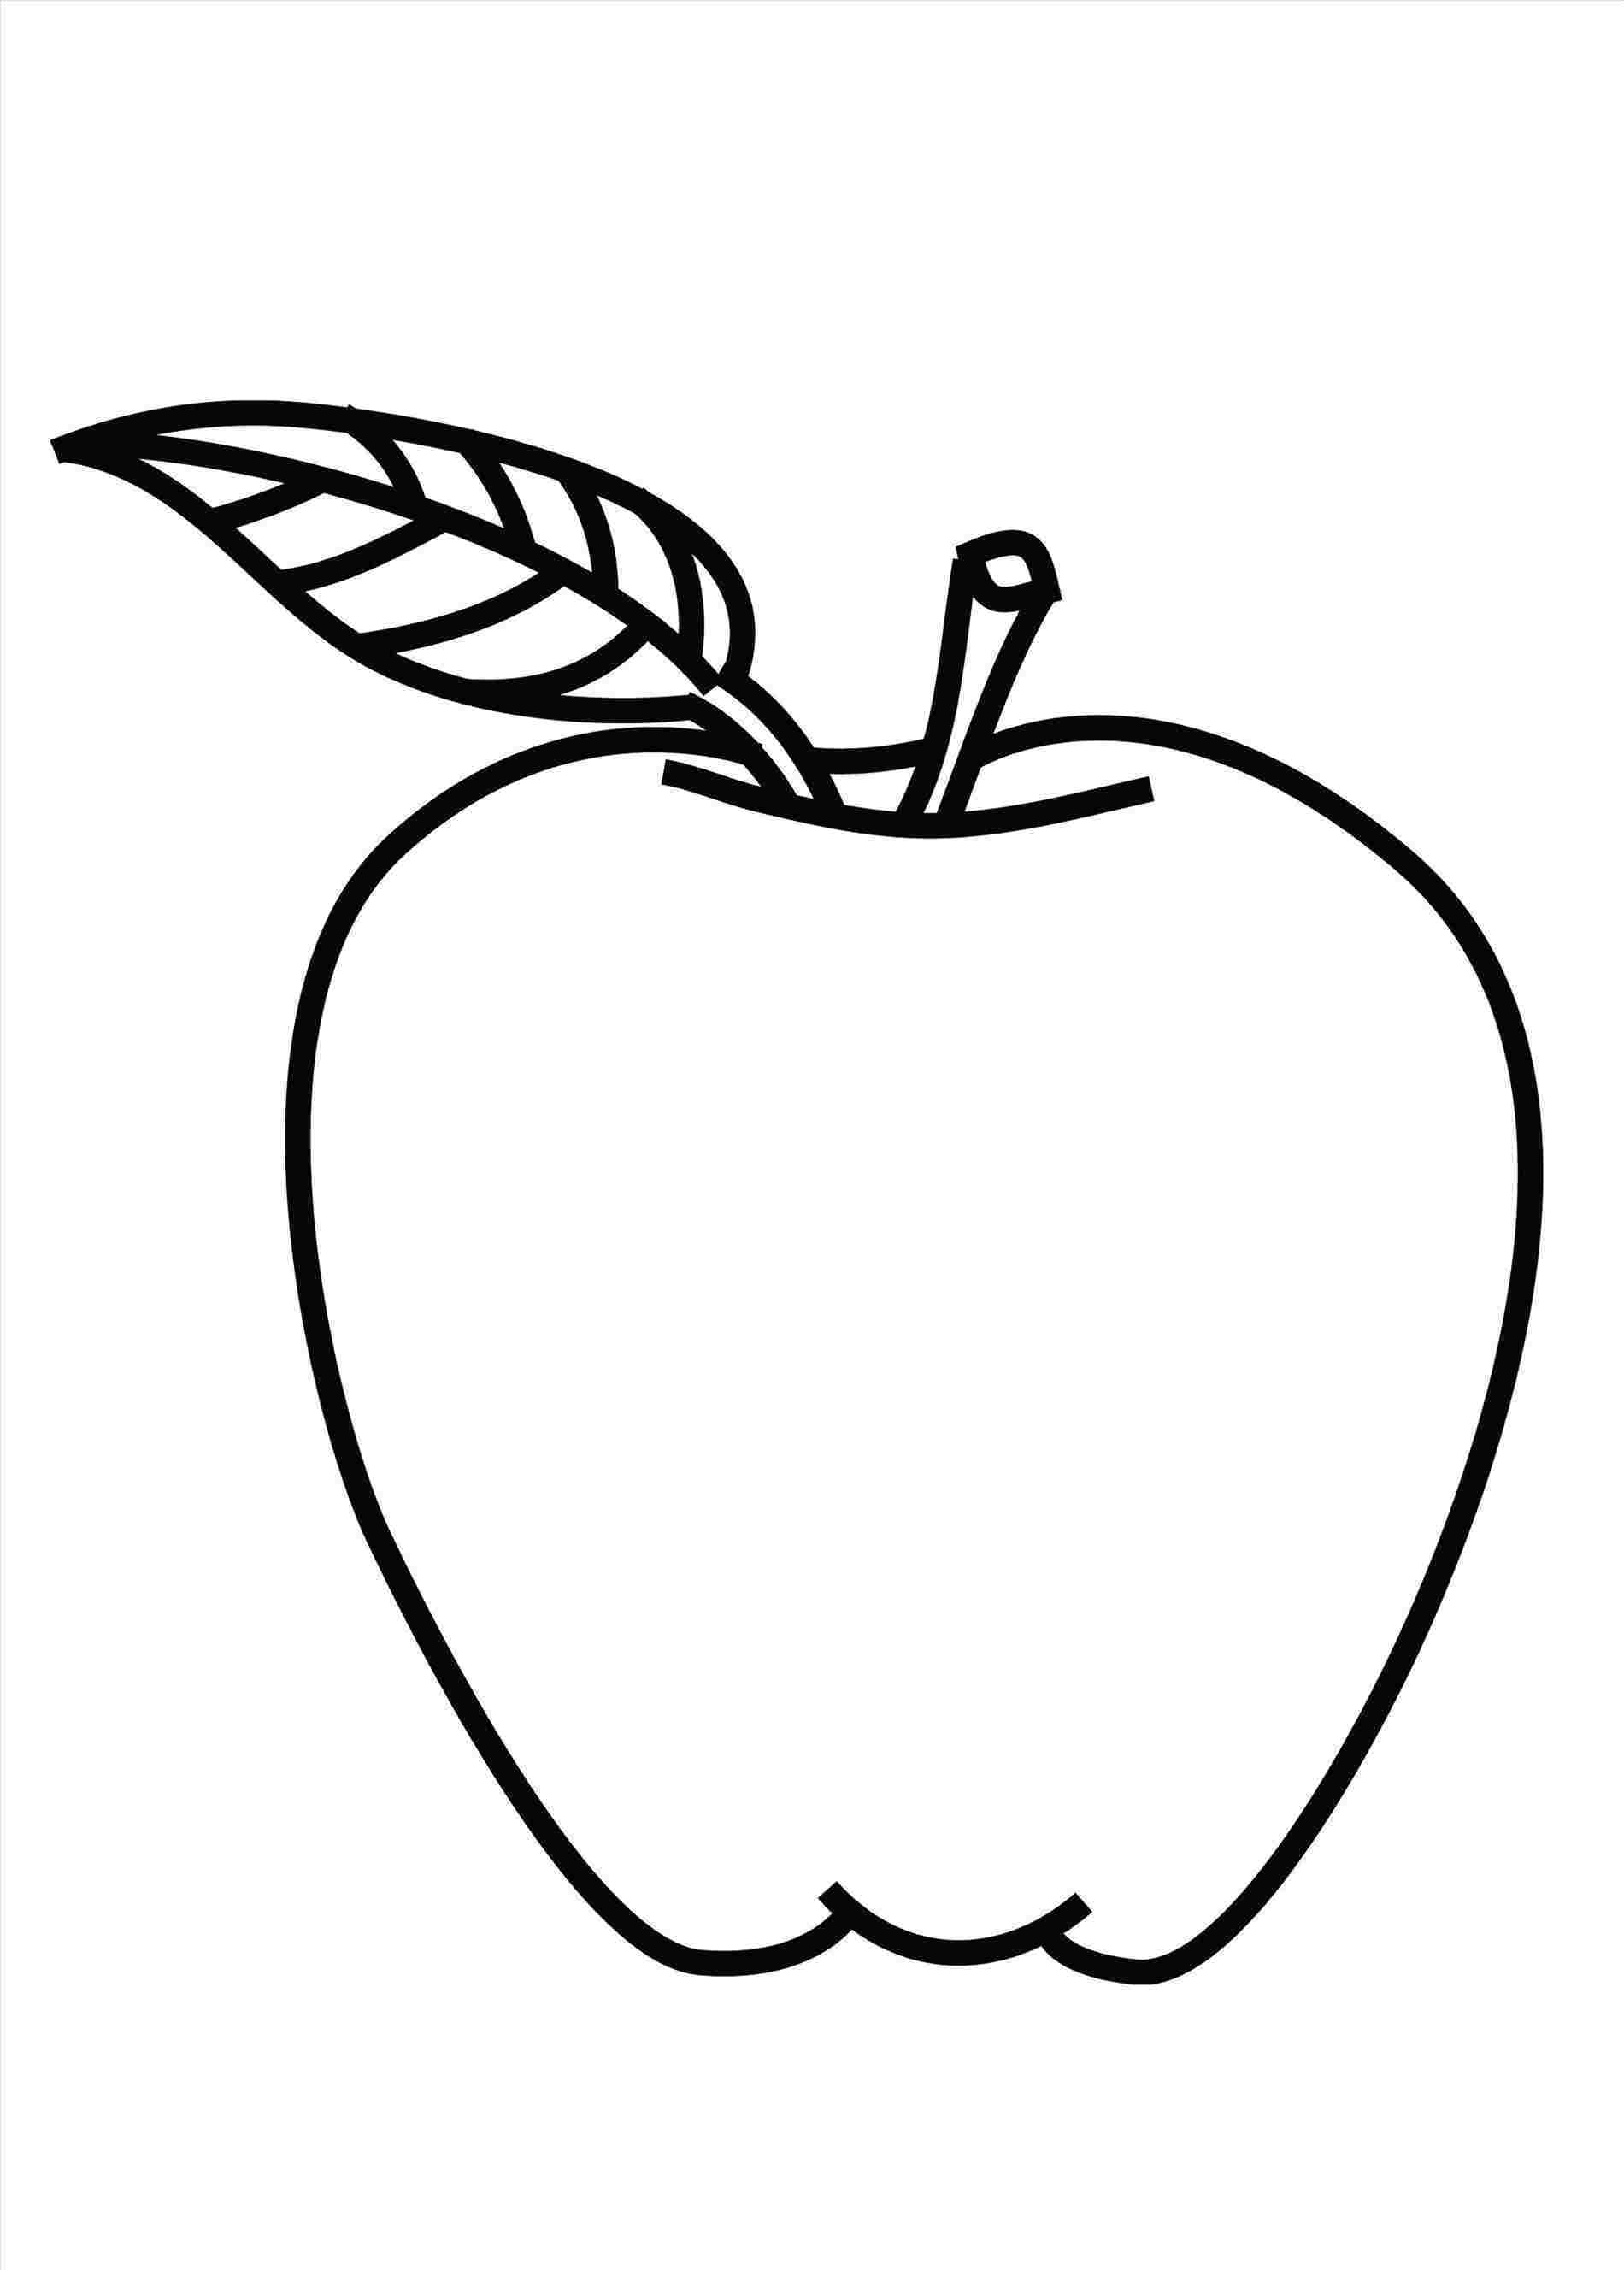 Apples clipart drawing, Apples drawing Transparent FREE for.